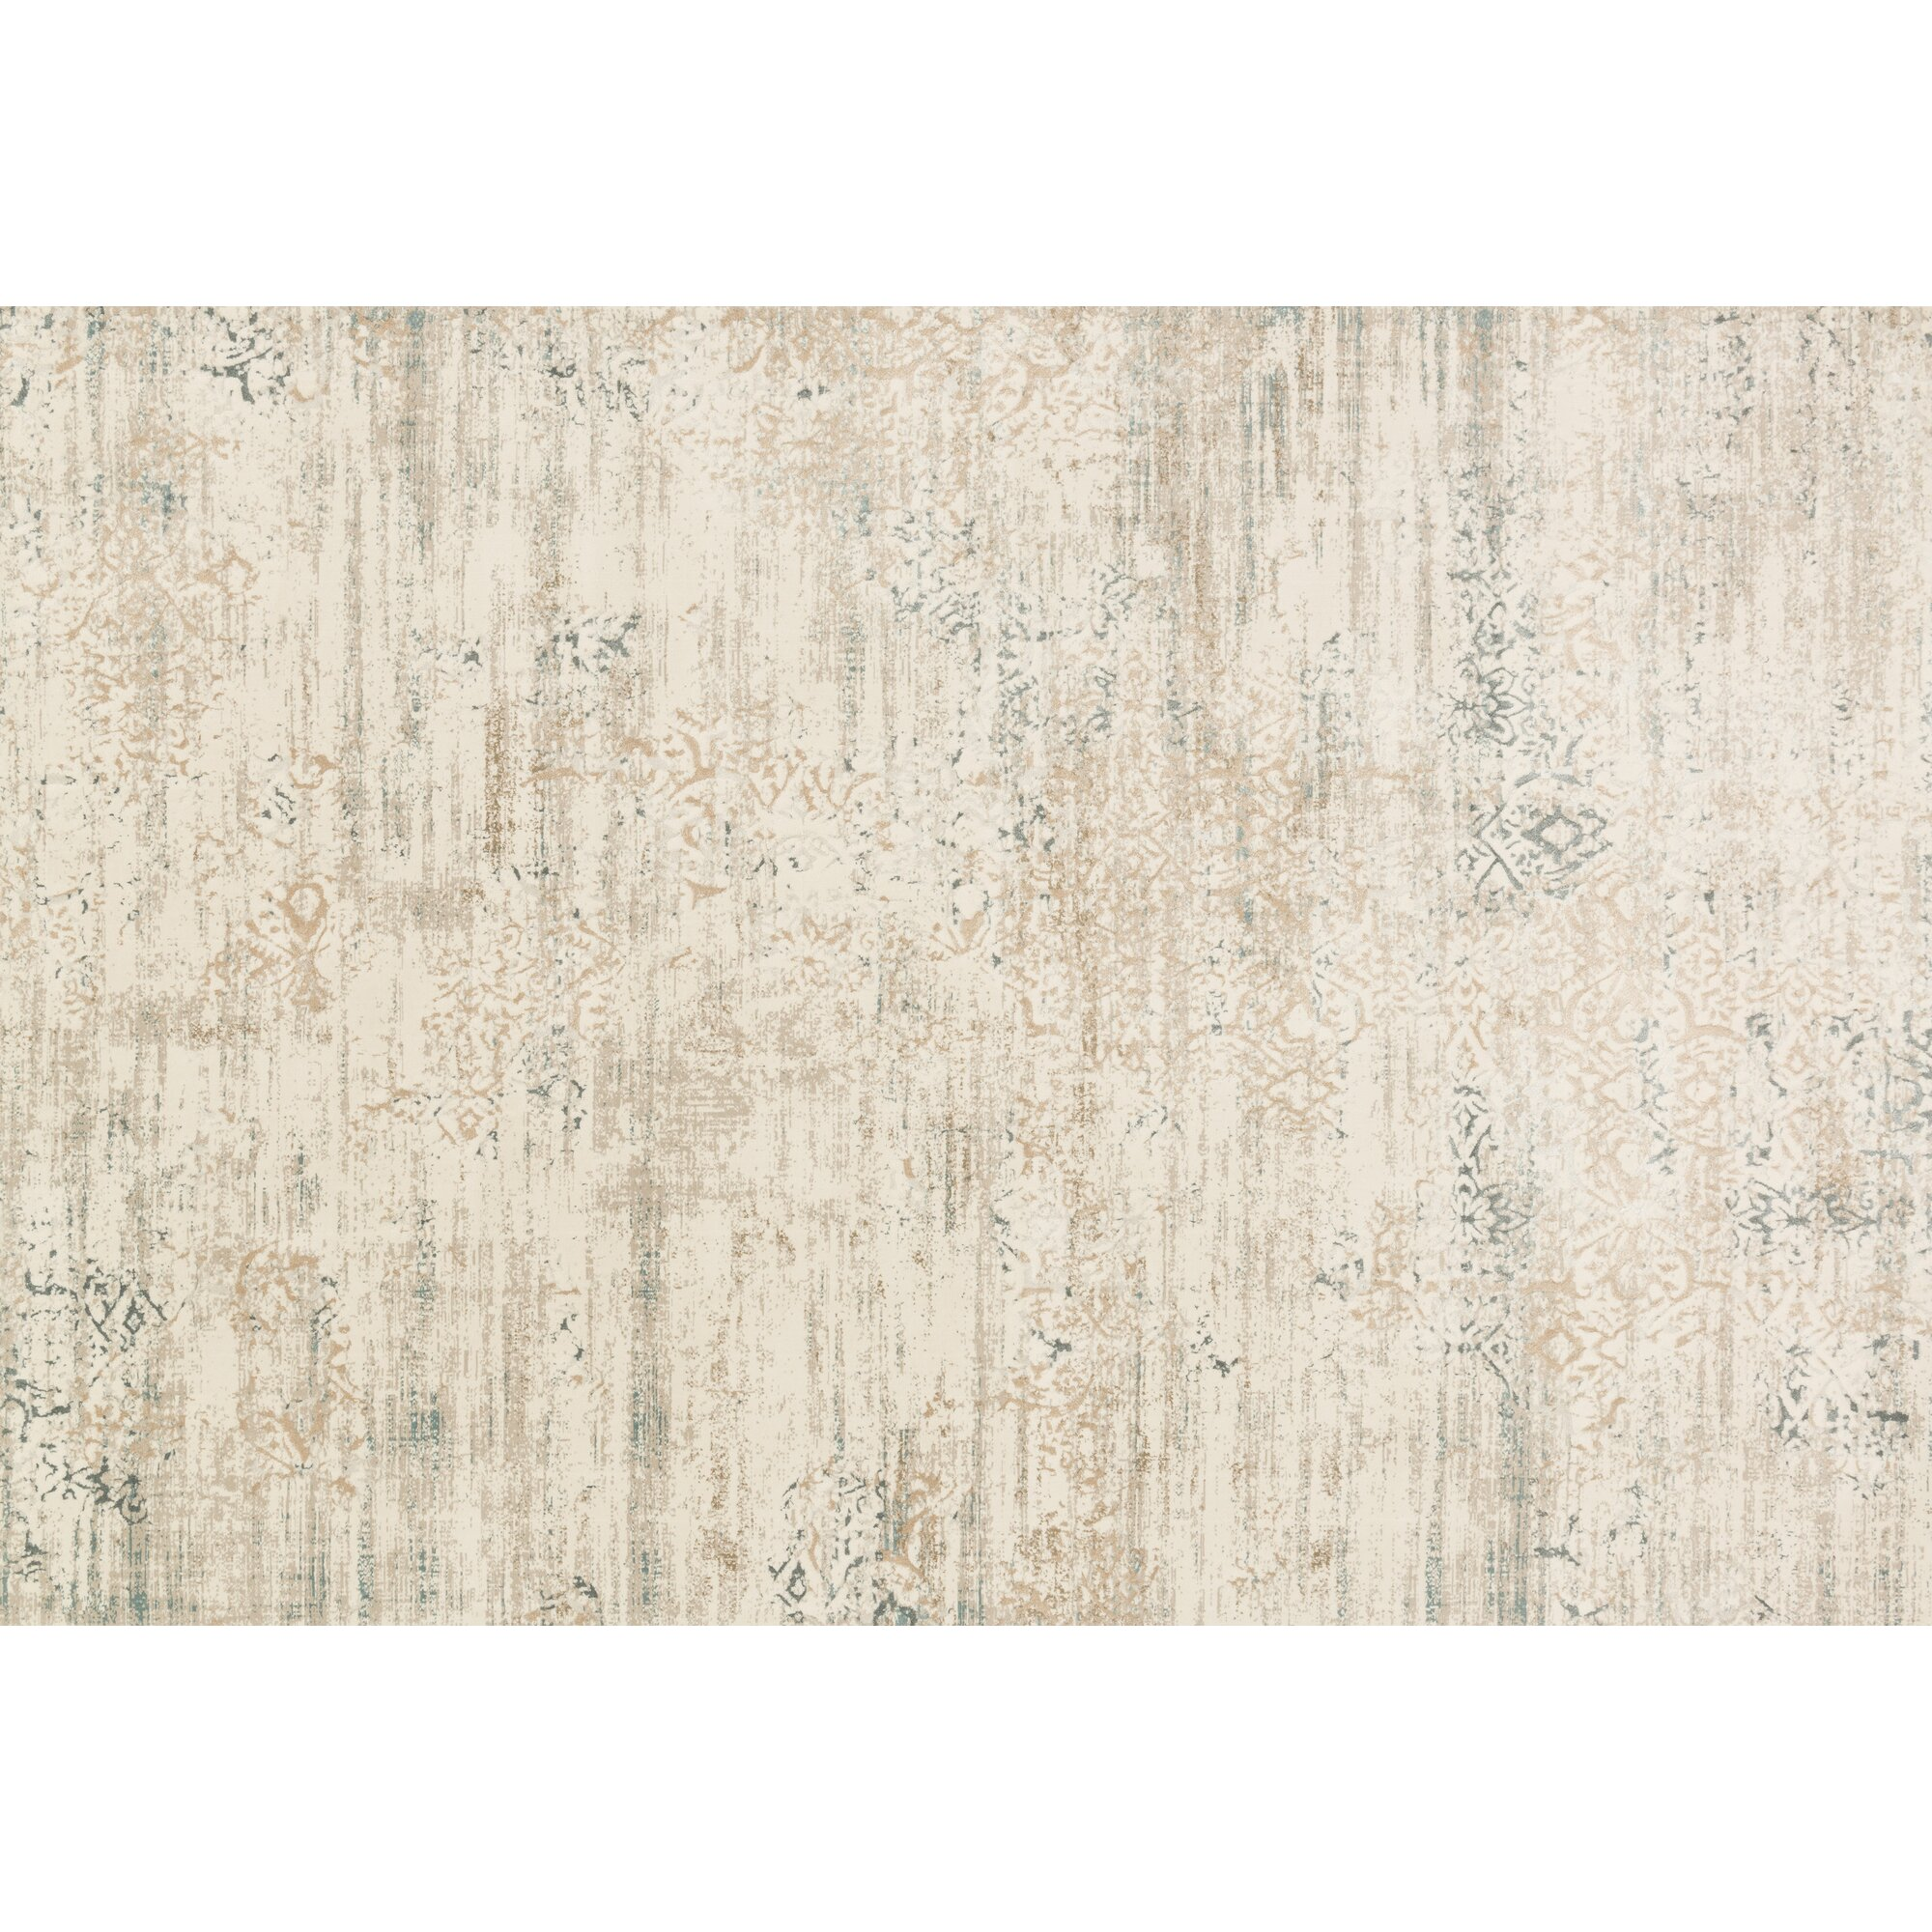 Kingston Ivory Area Rug Rugs For Nursery Canadaarea Canada Home Decors Collection